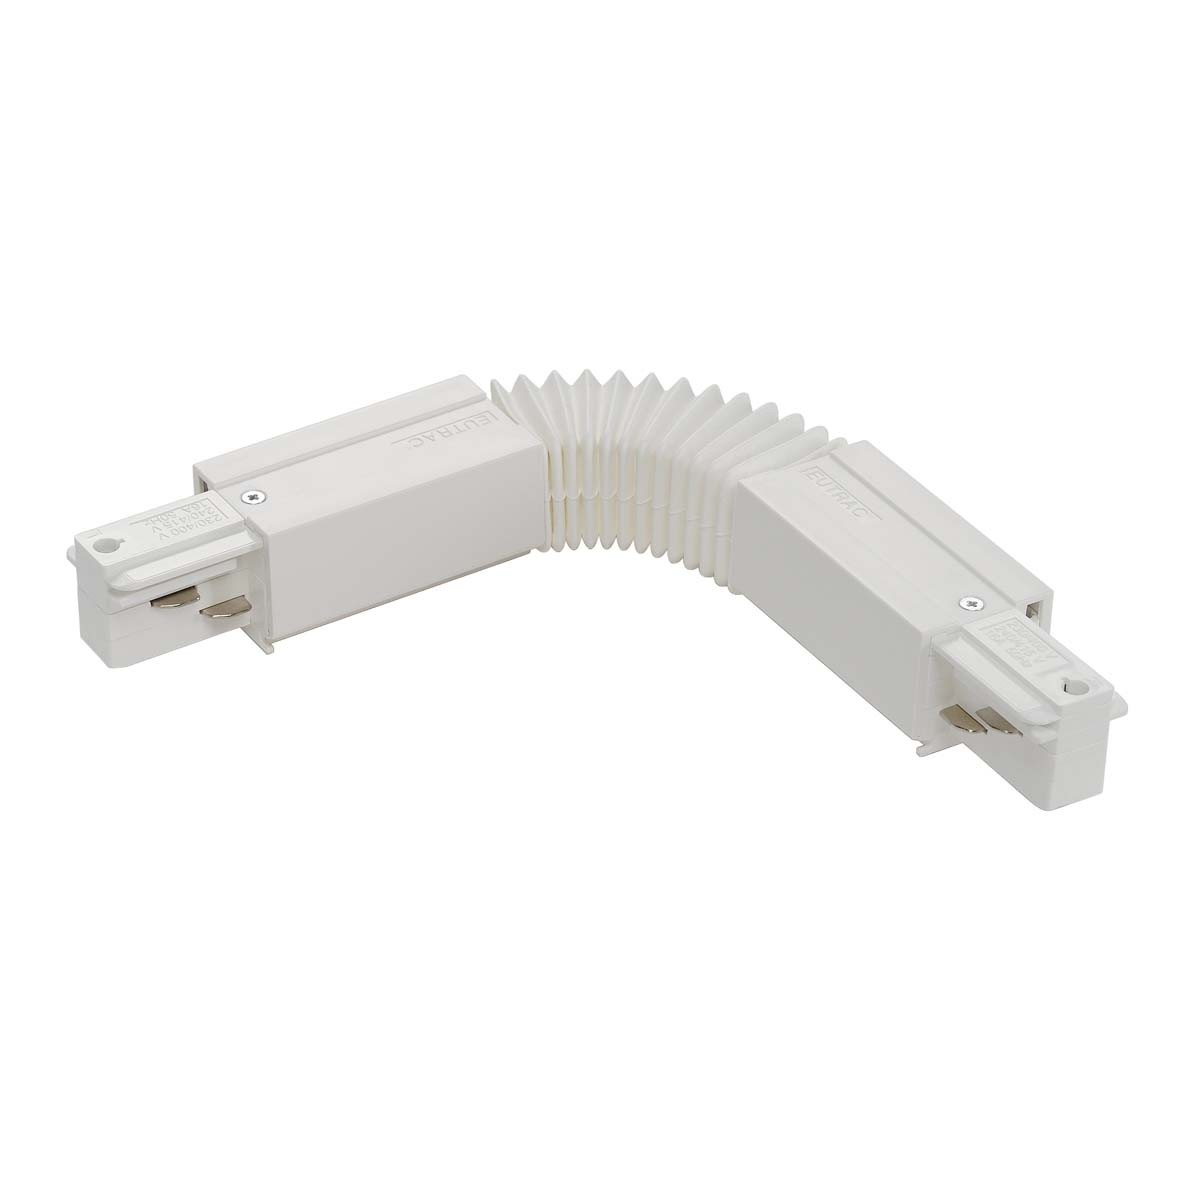 SLV 145581 Flex Connector White Eutrac 3 Circuit 240V Surface Track Accessory